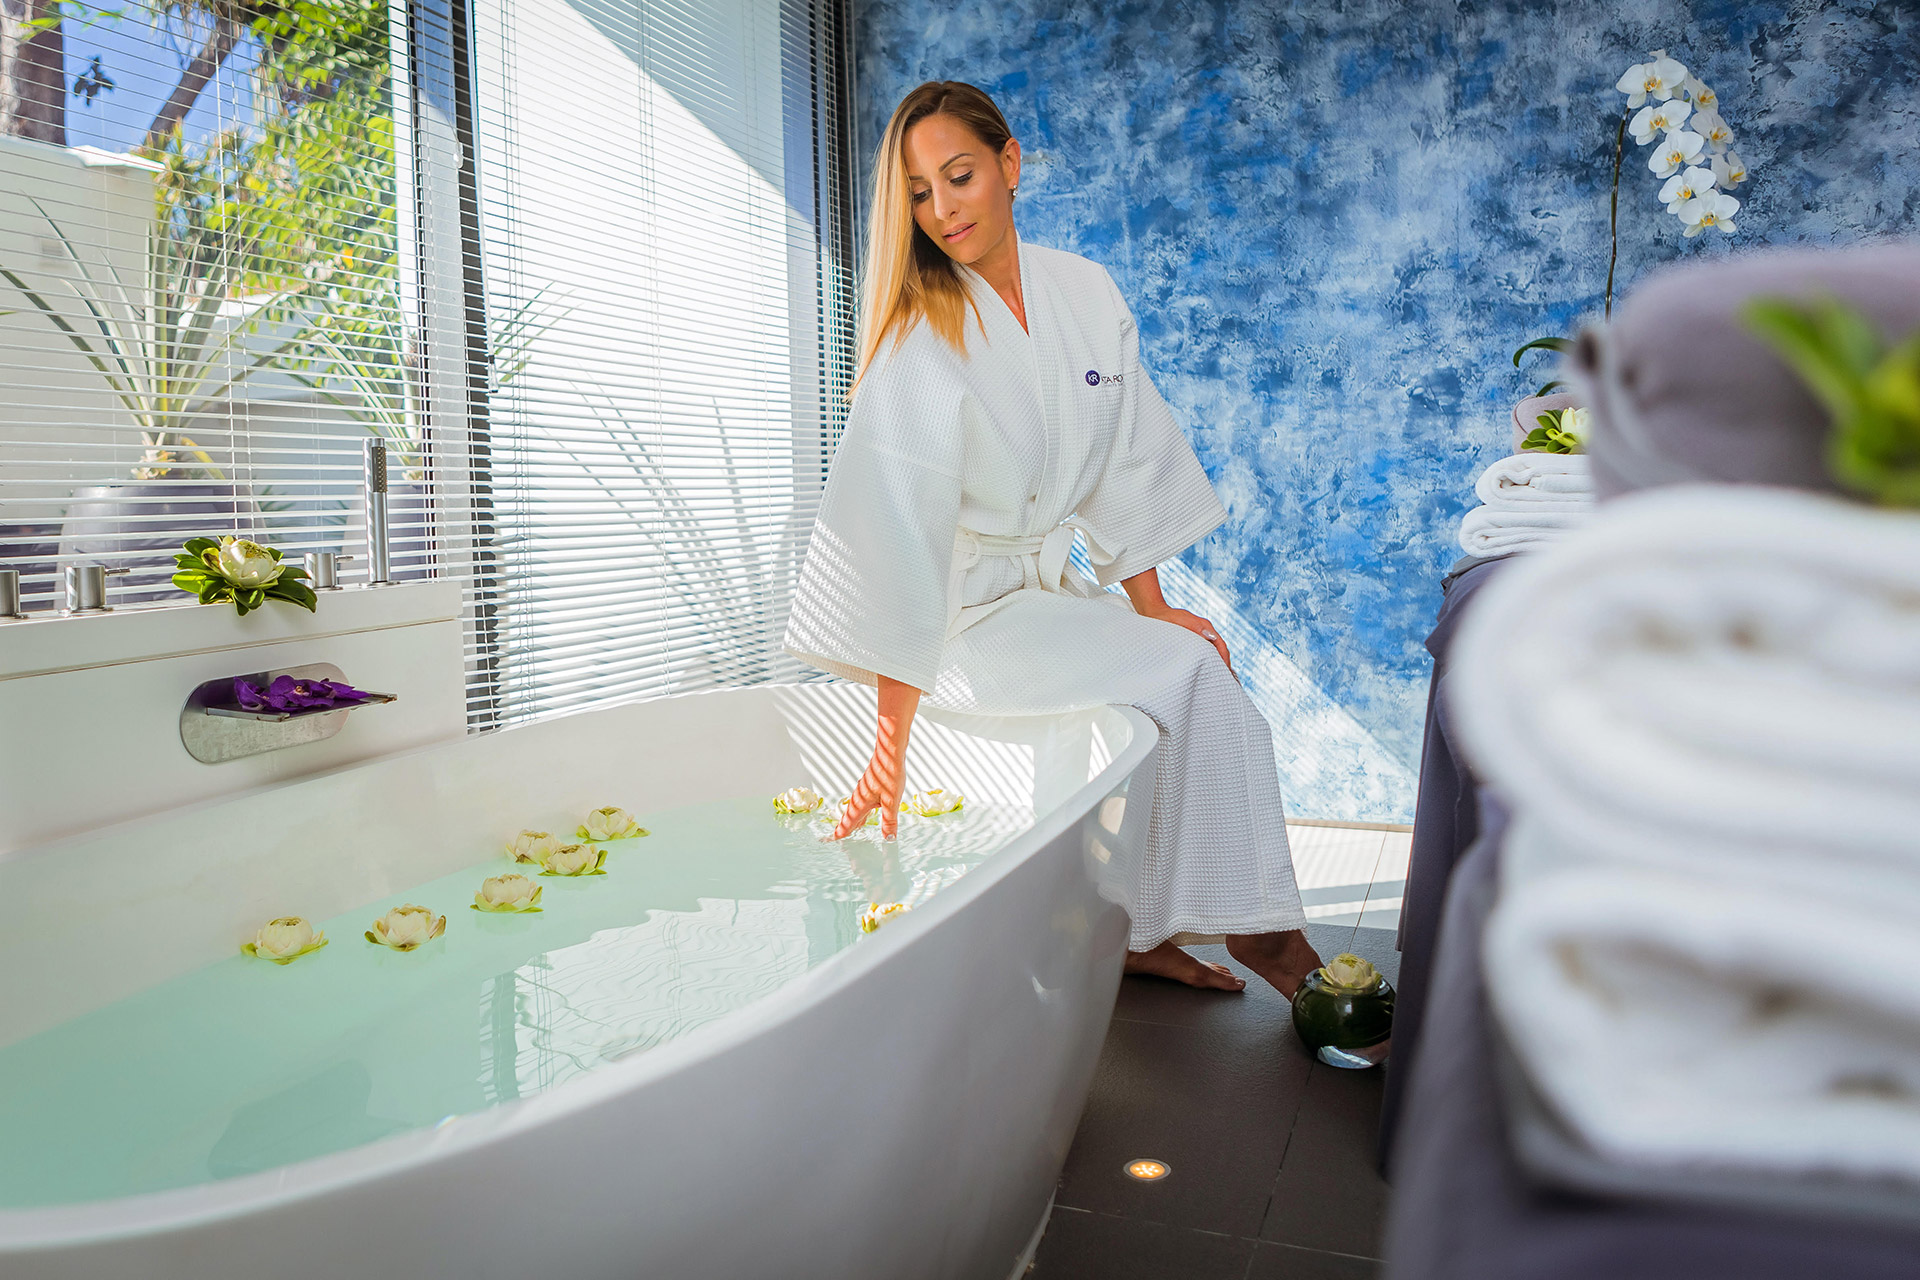 LUXURY SPA MANAGEMENT